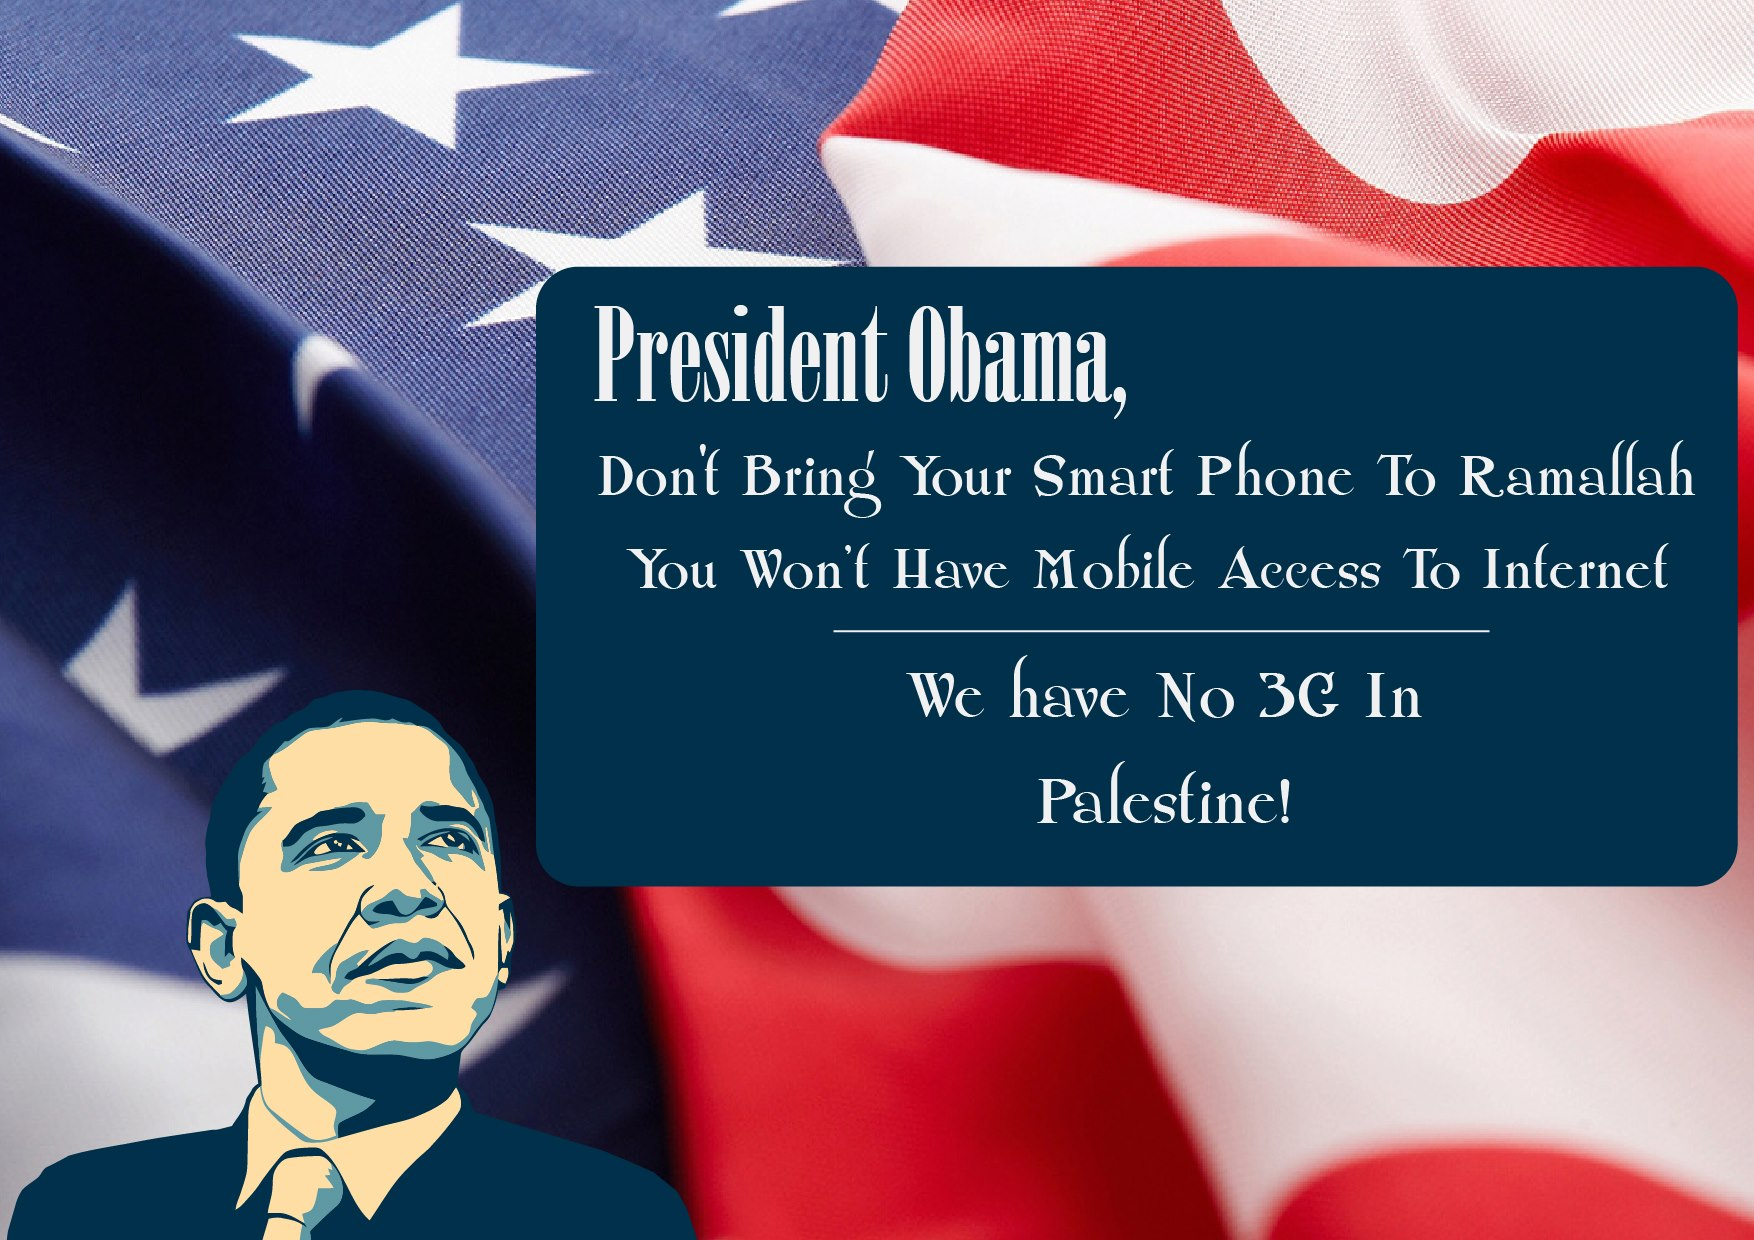 Palestinians called on President Obama to leave his smartphone at home